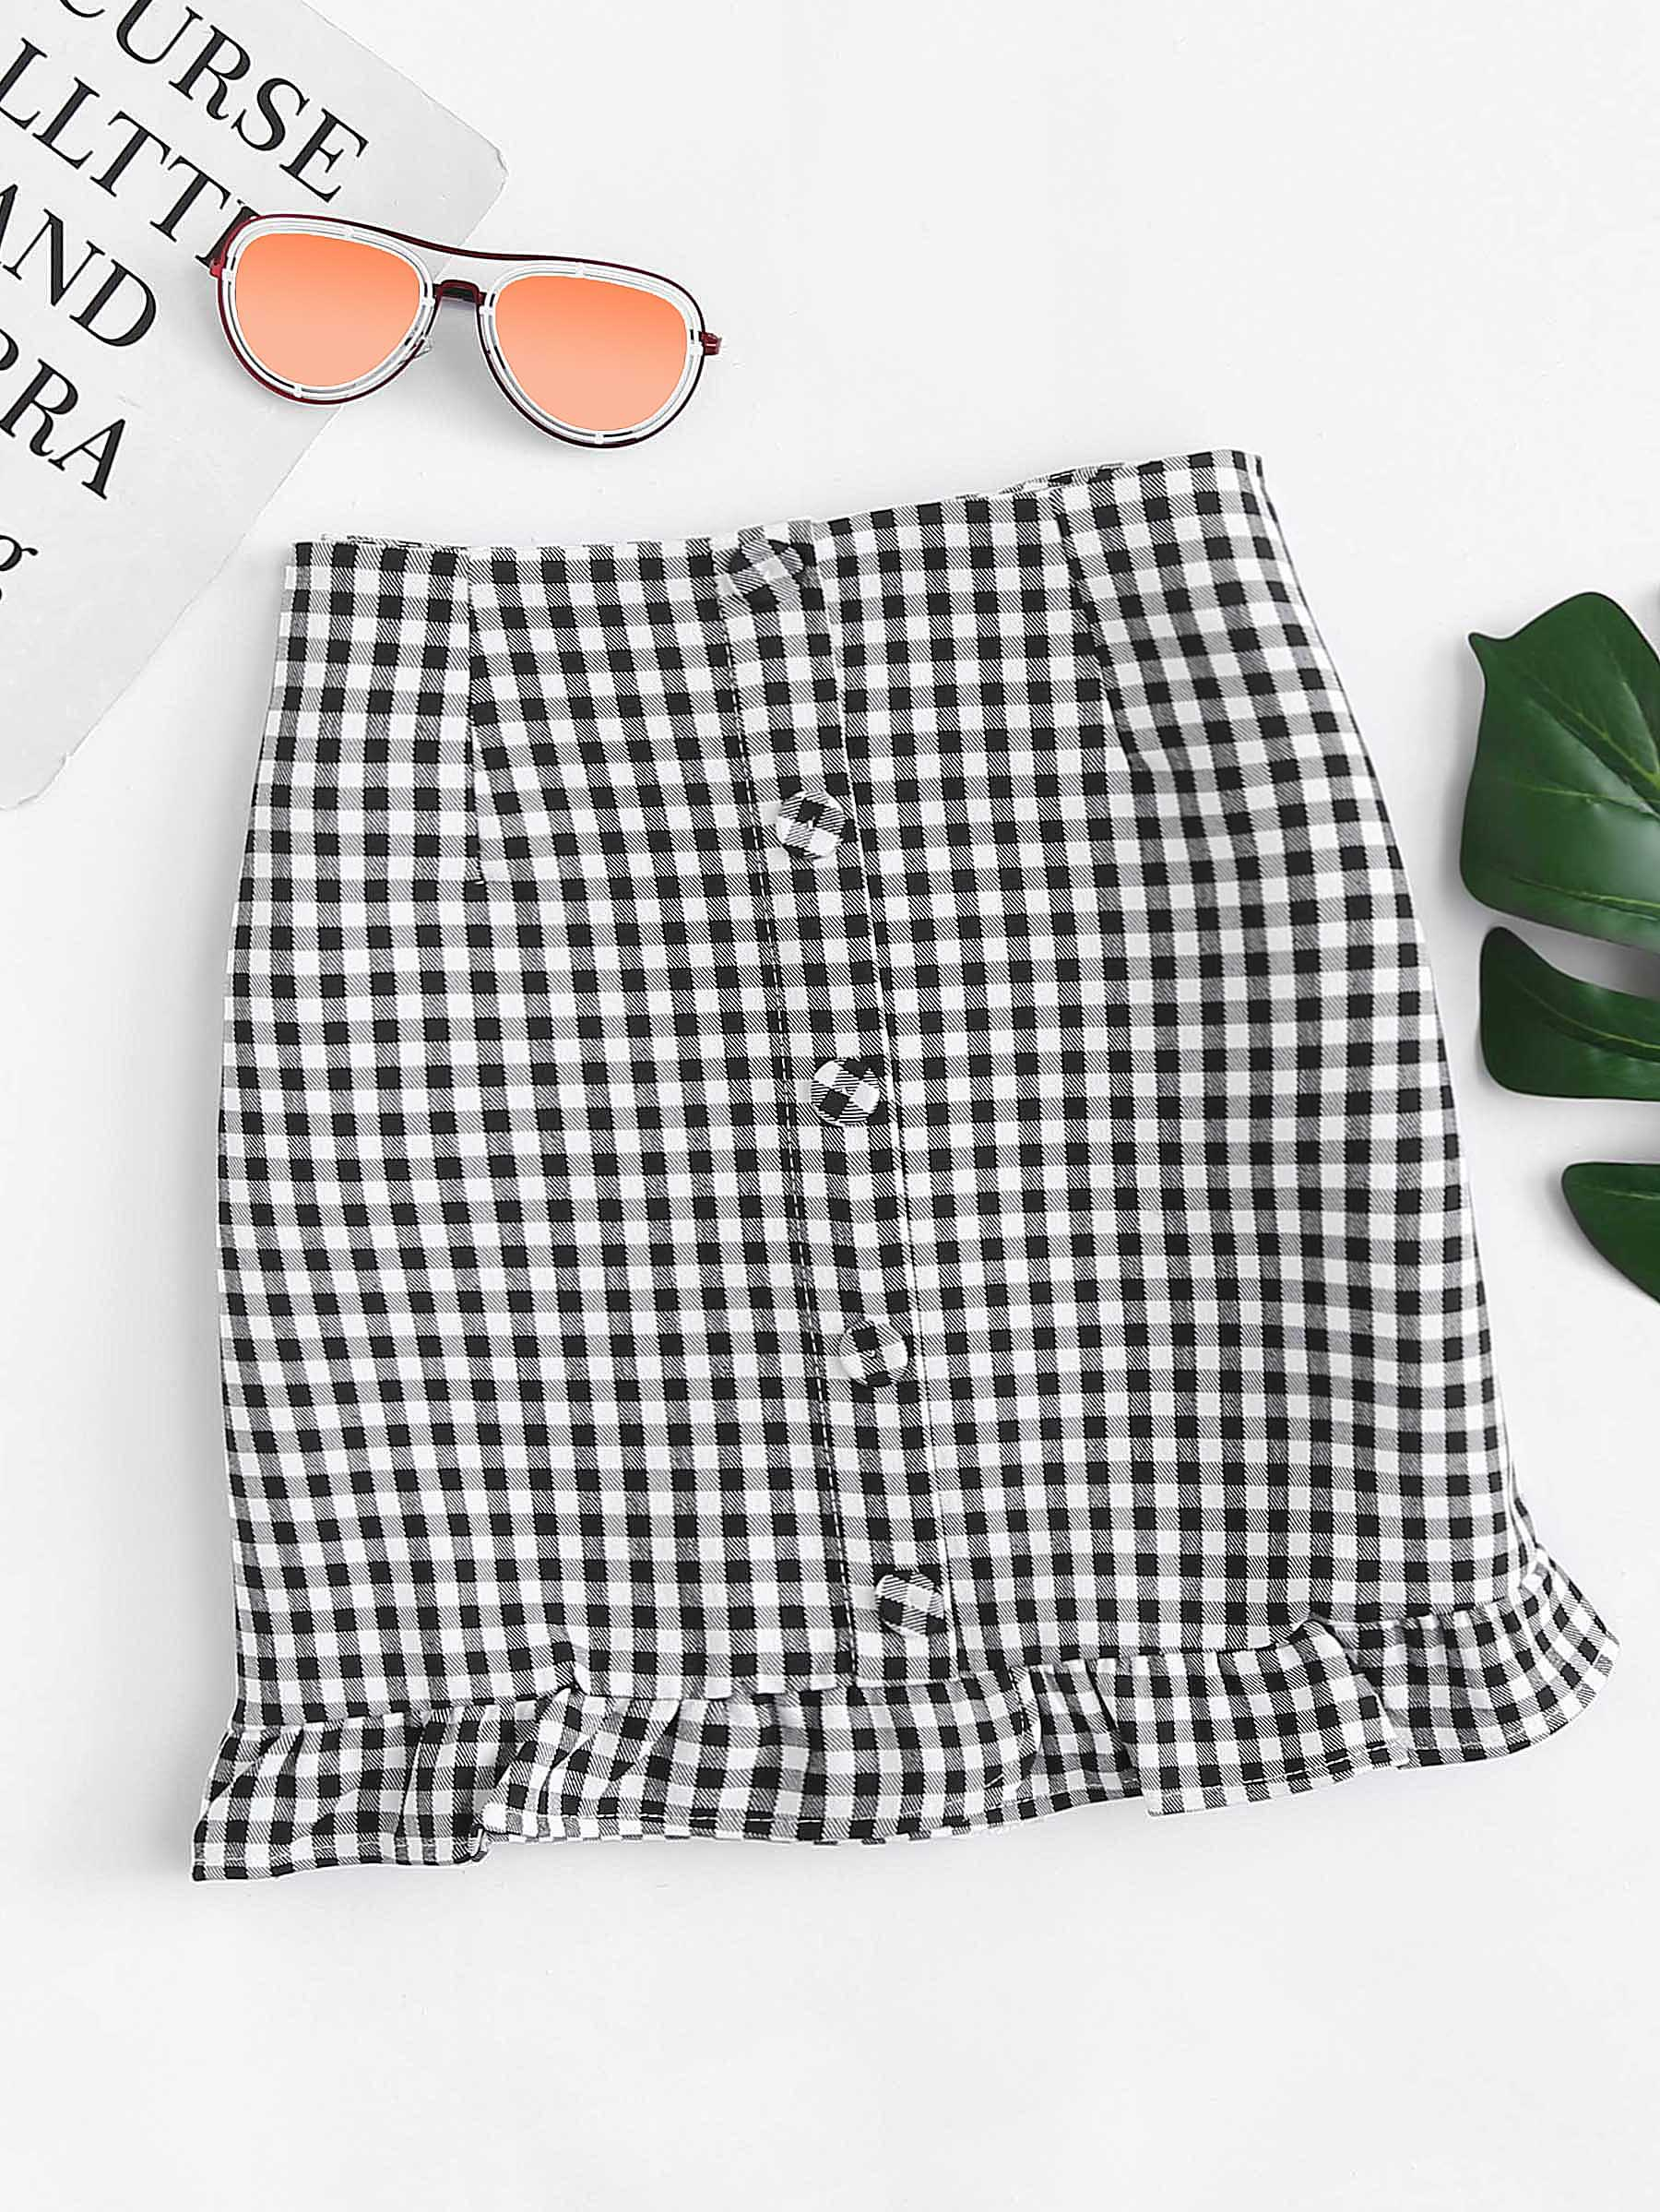 Ruffle Hem Gingham Skirt ruffle hem button detail gingham skirt